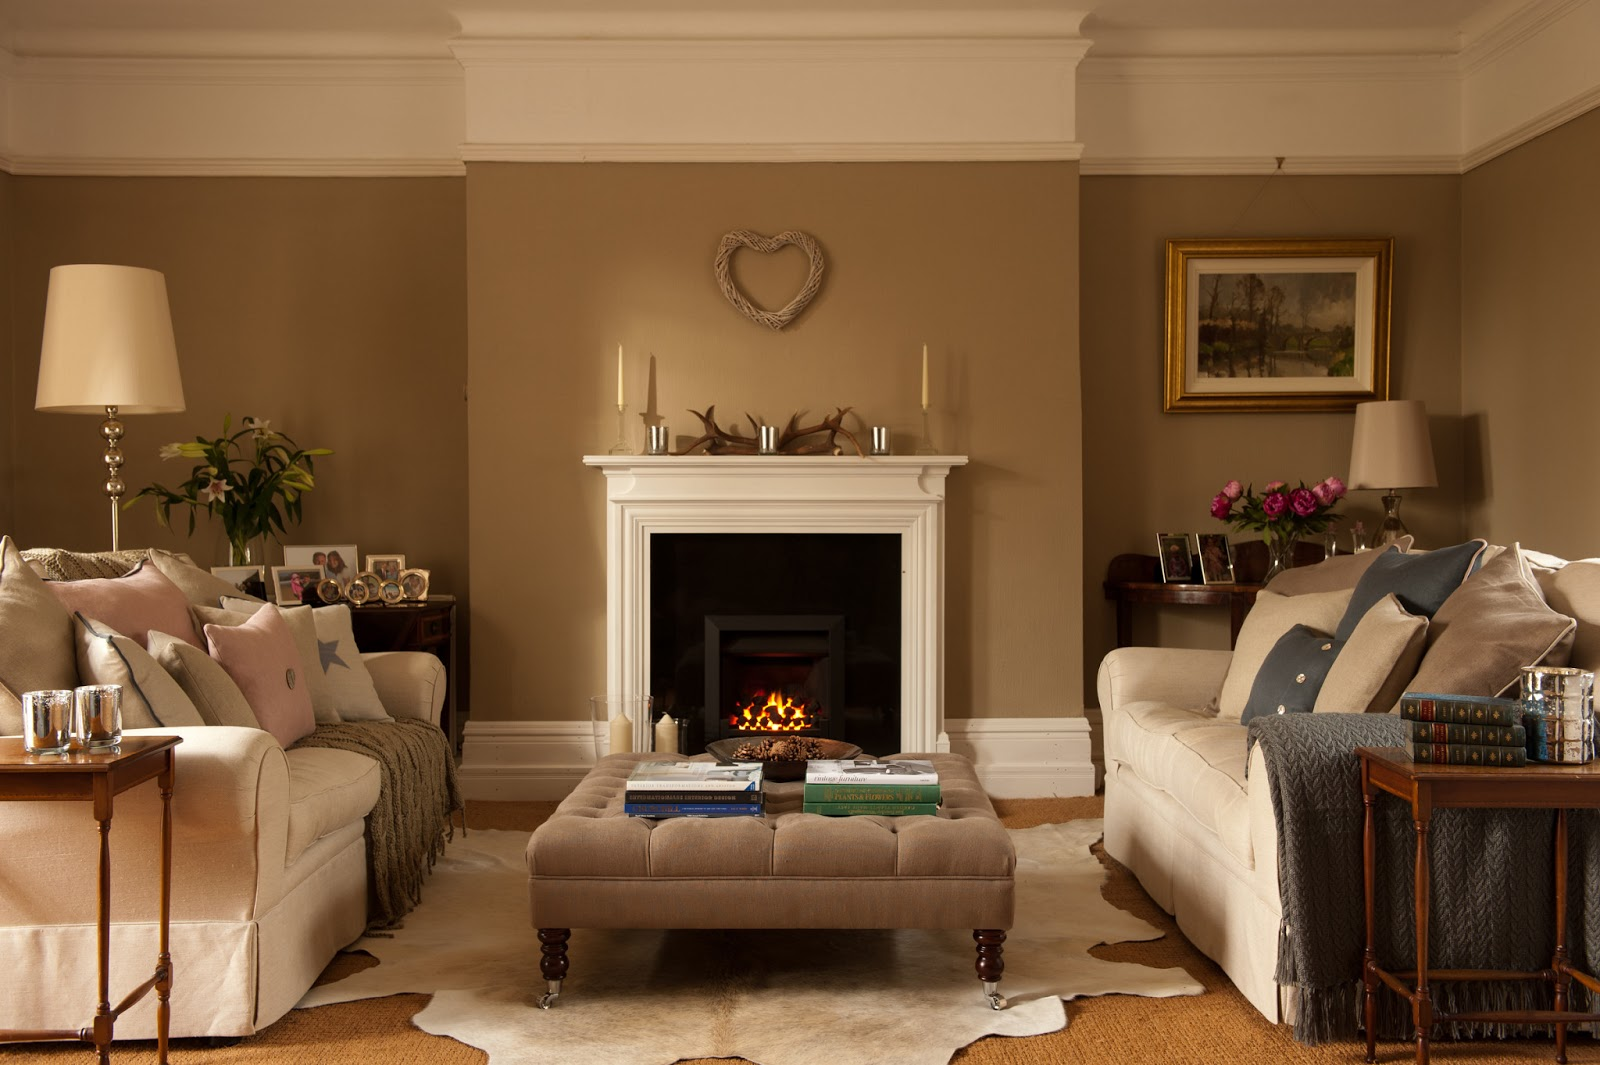 Rsky t l irish style living styles - Interior design styles for small living room ...